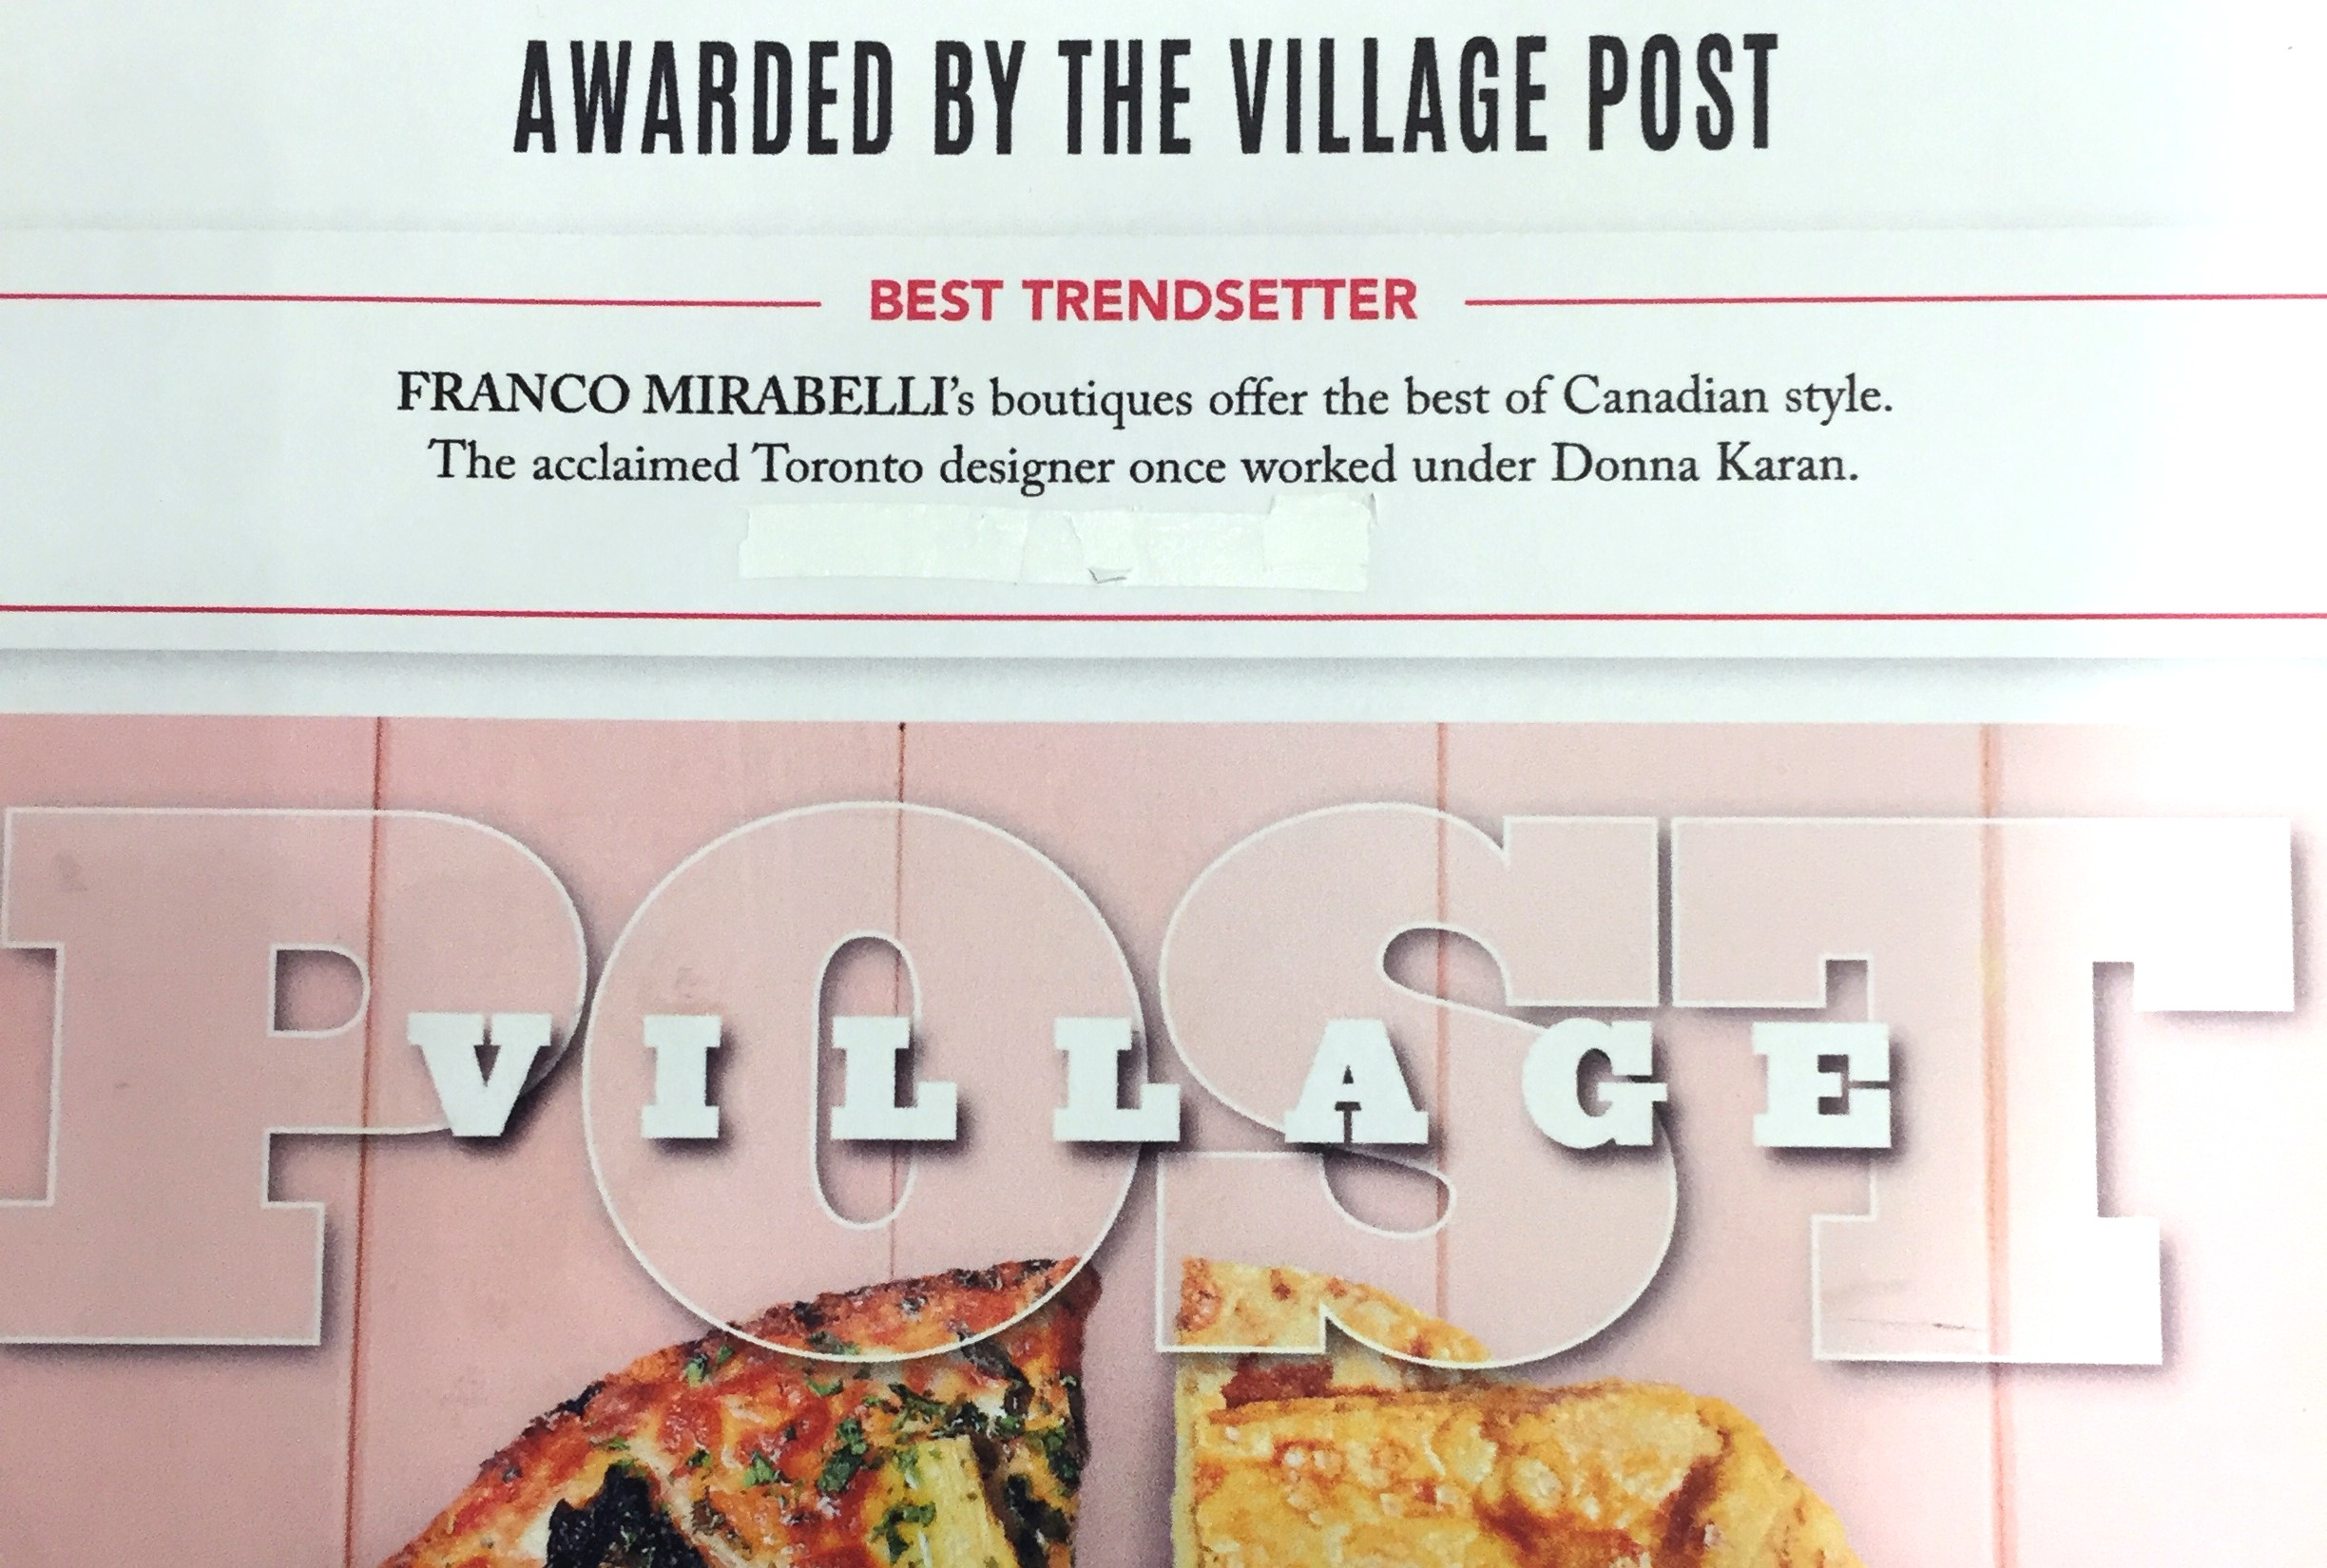 Village Post Names Franco Mirabelli Best Trendsetter of 2018